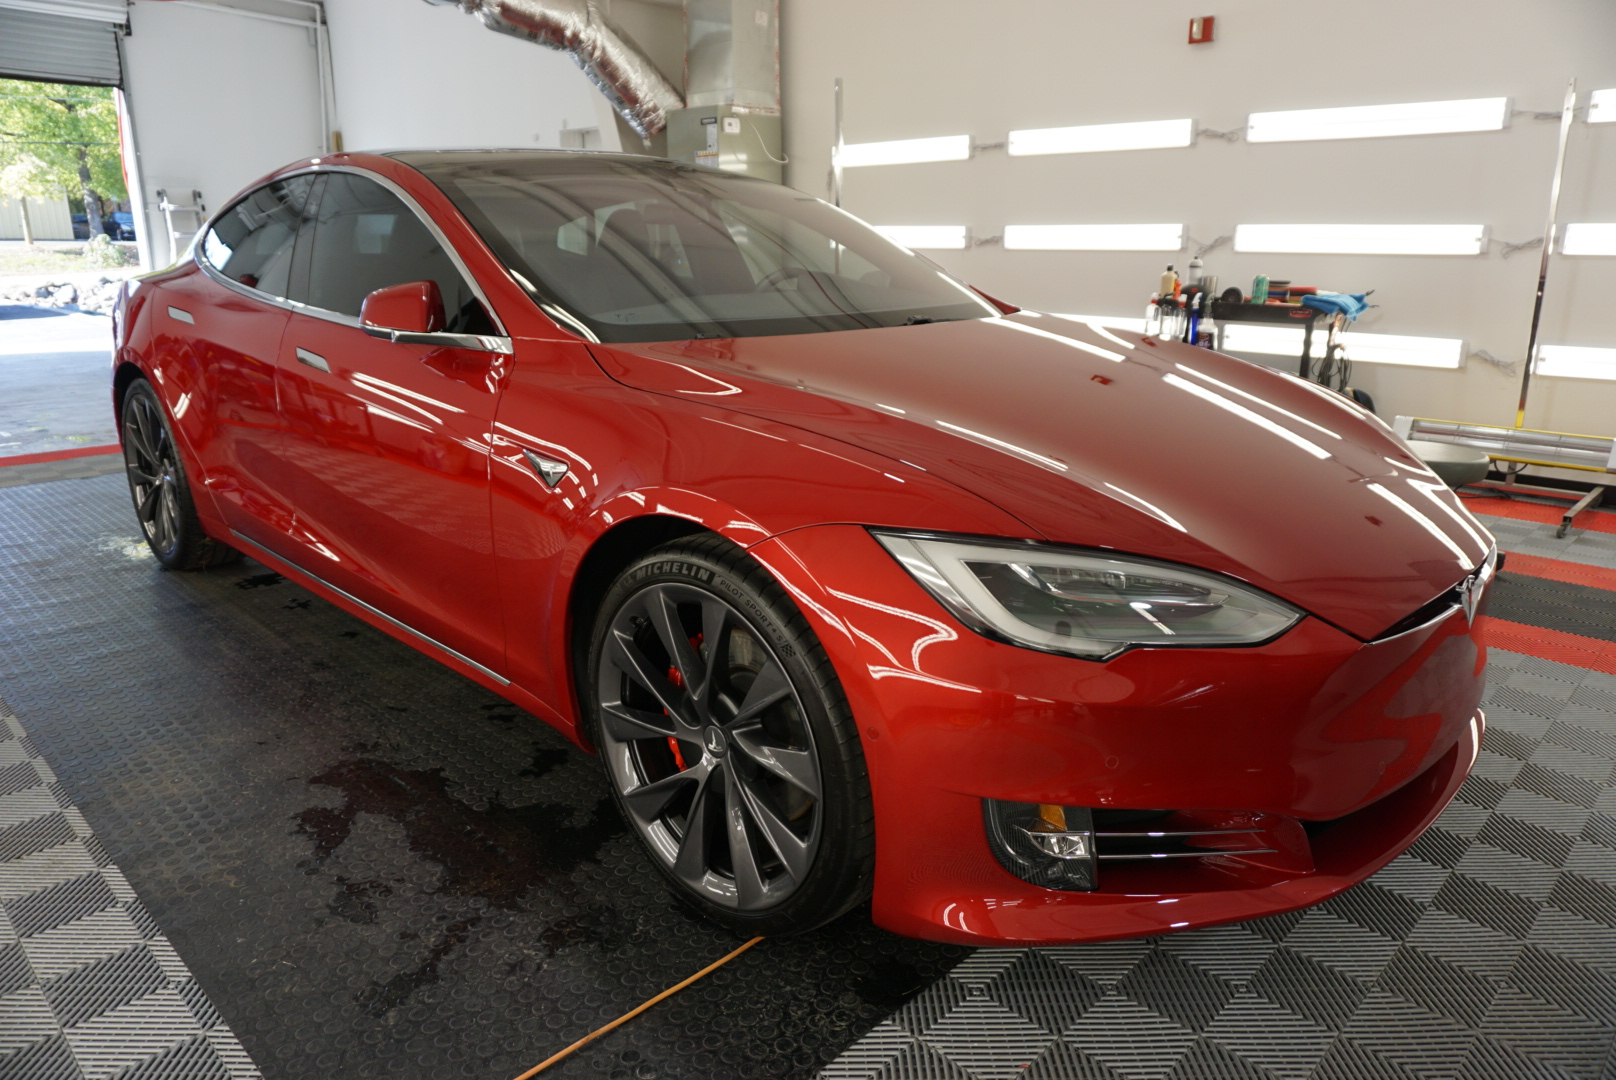 Photo of a Ceramic Coating of a 2019 Tesla Model S